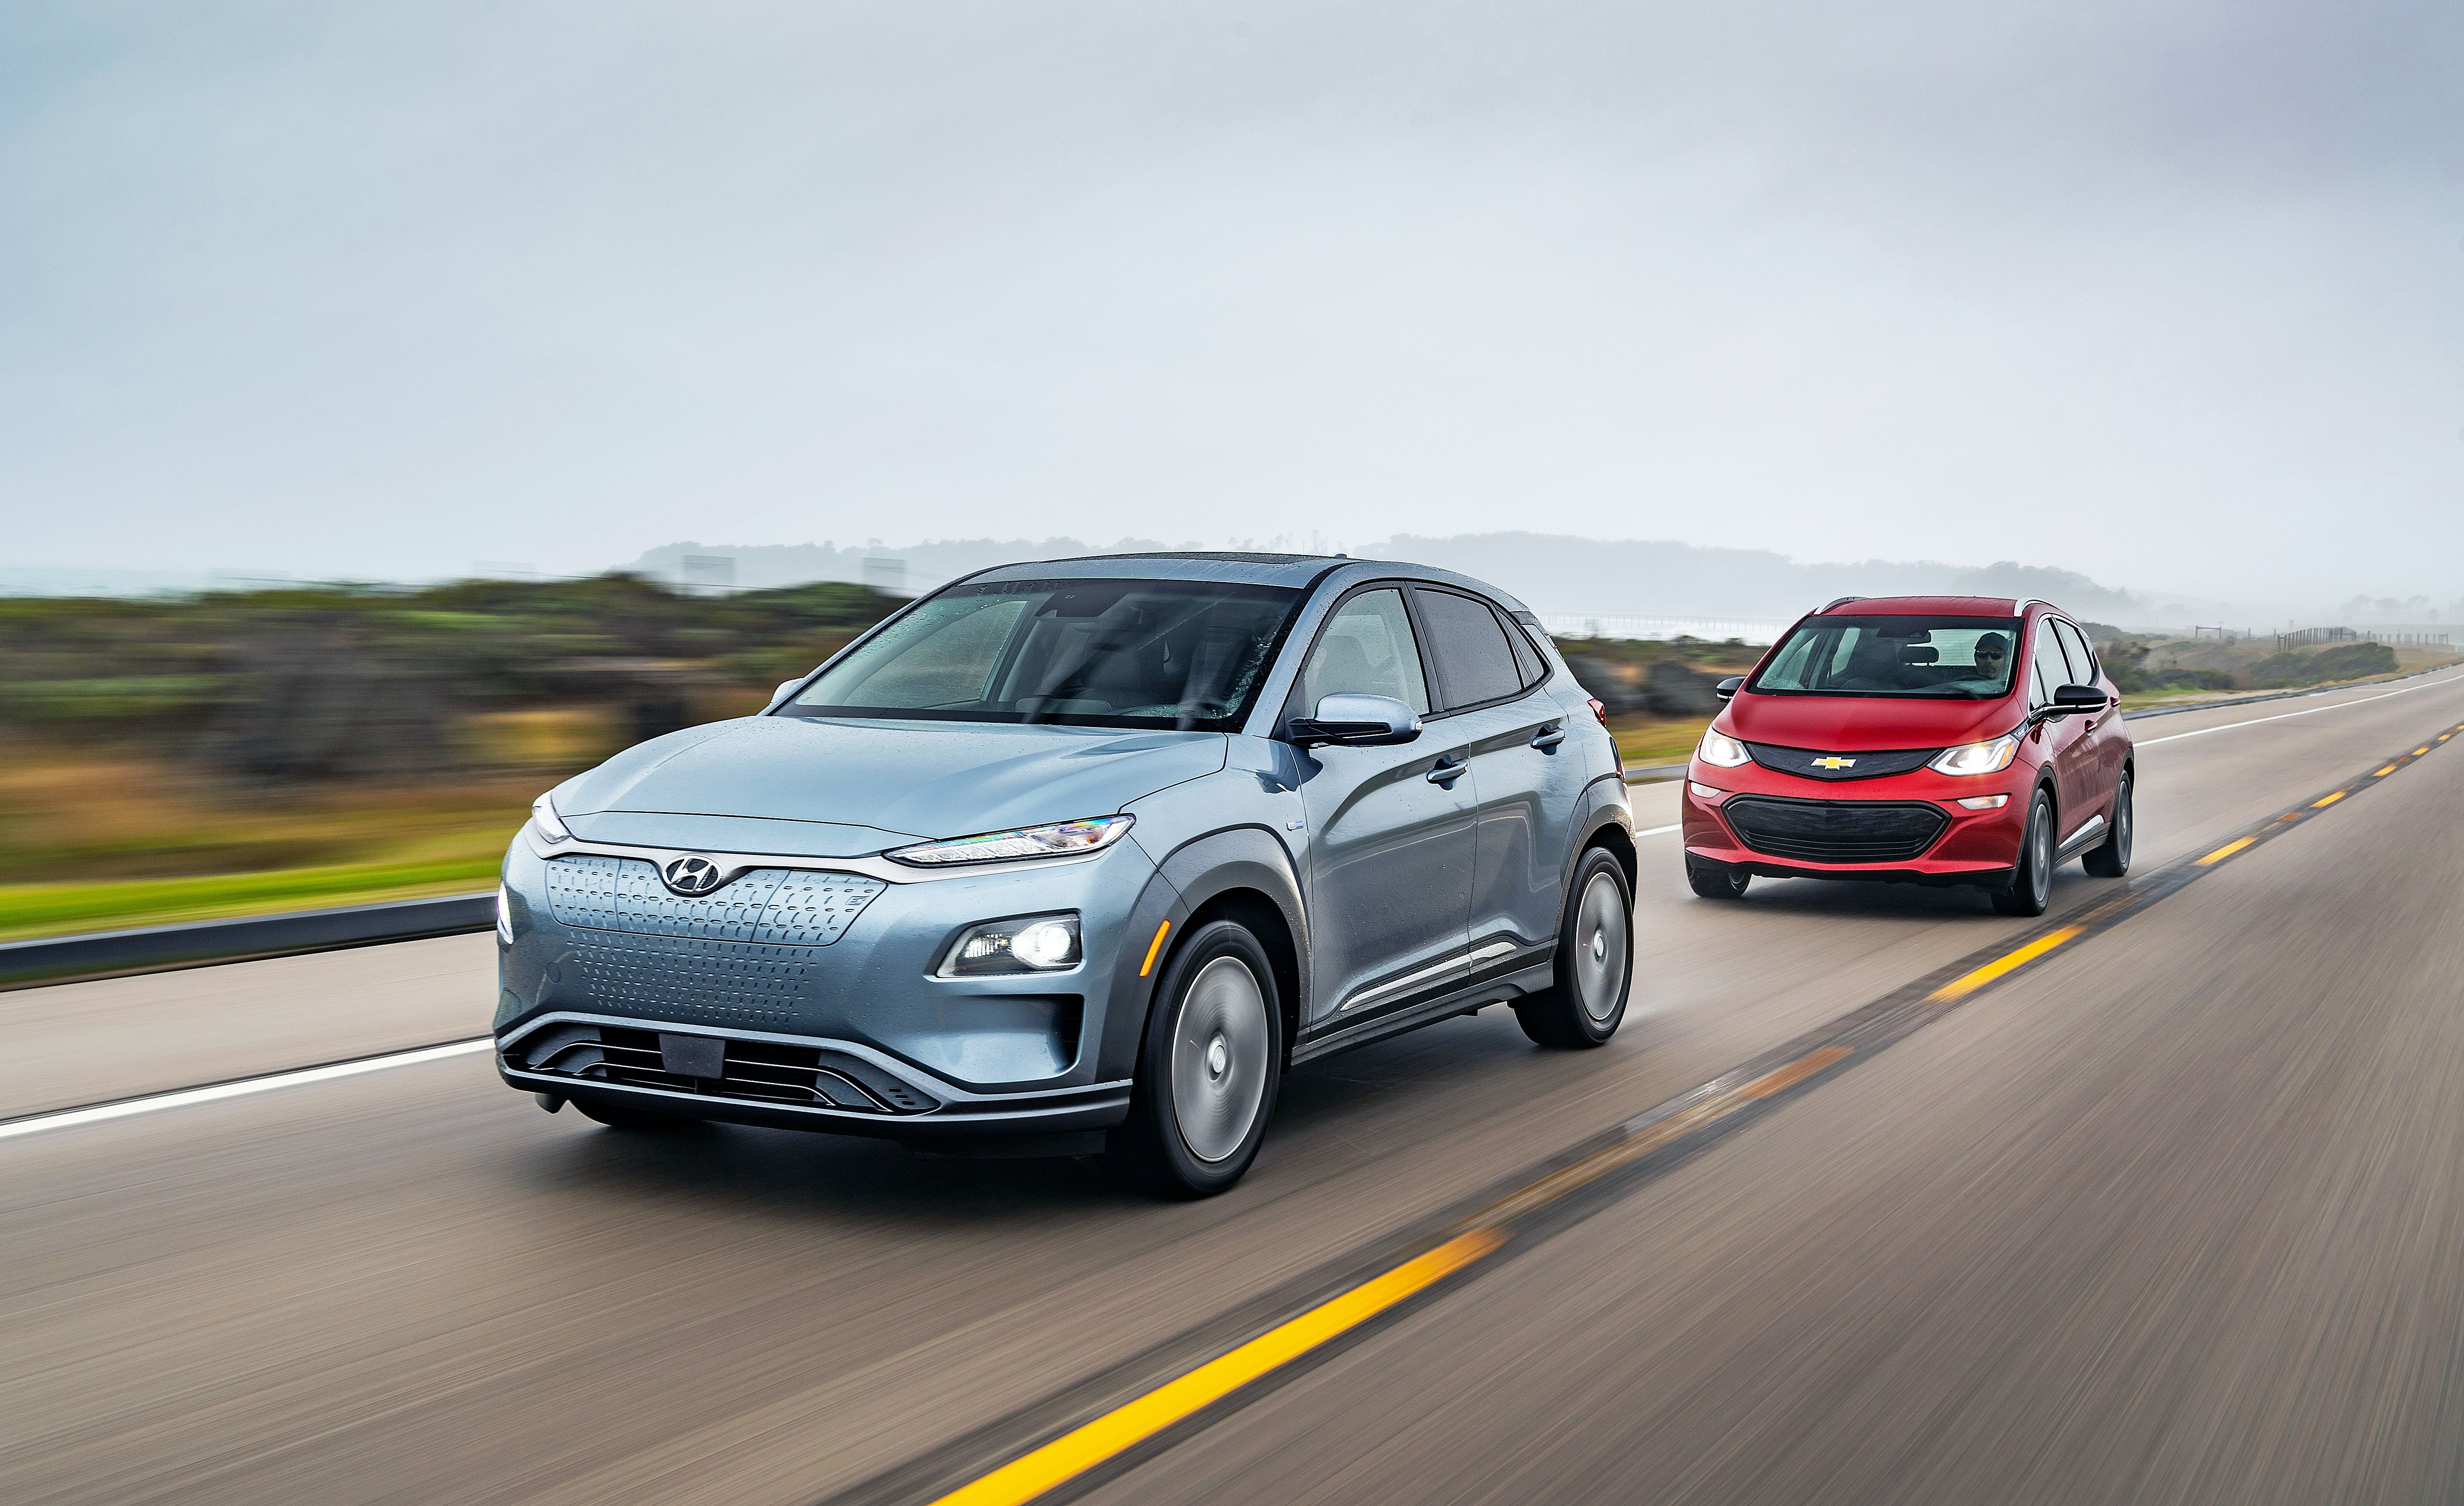 2019 Chevrolet Bolt Ev Vs Hyundai Kona Electric 200 Plus Miles Of Range And Fast Charging Capabilities